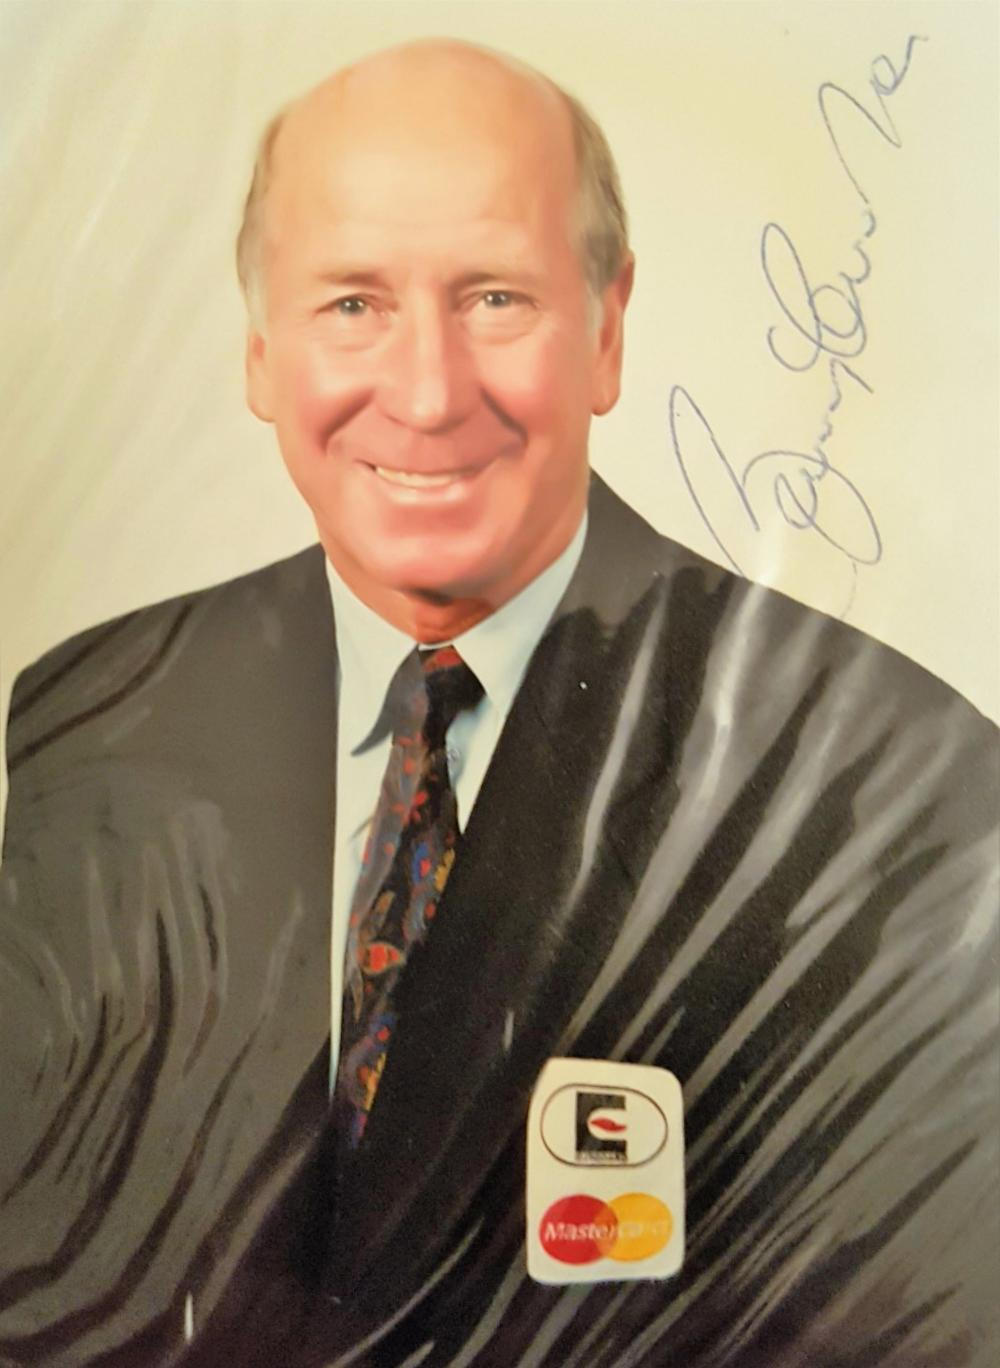 Lot 222: Sir Bobby Charlton signed mastercard promo photo